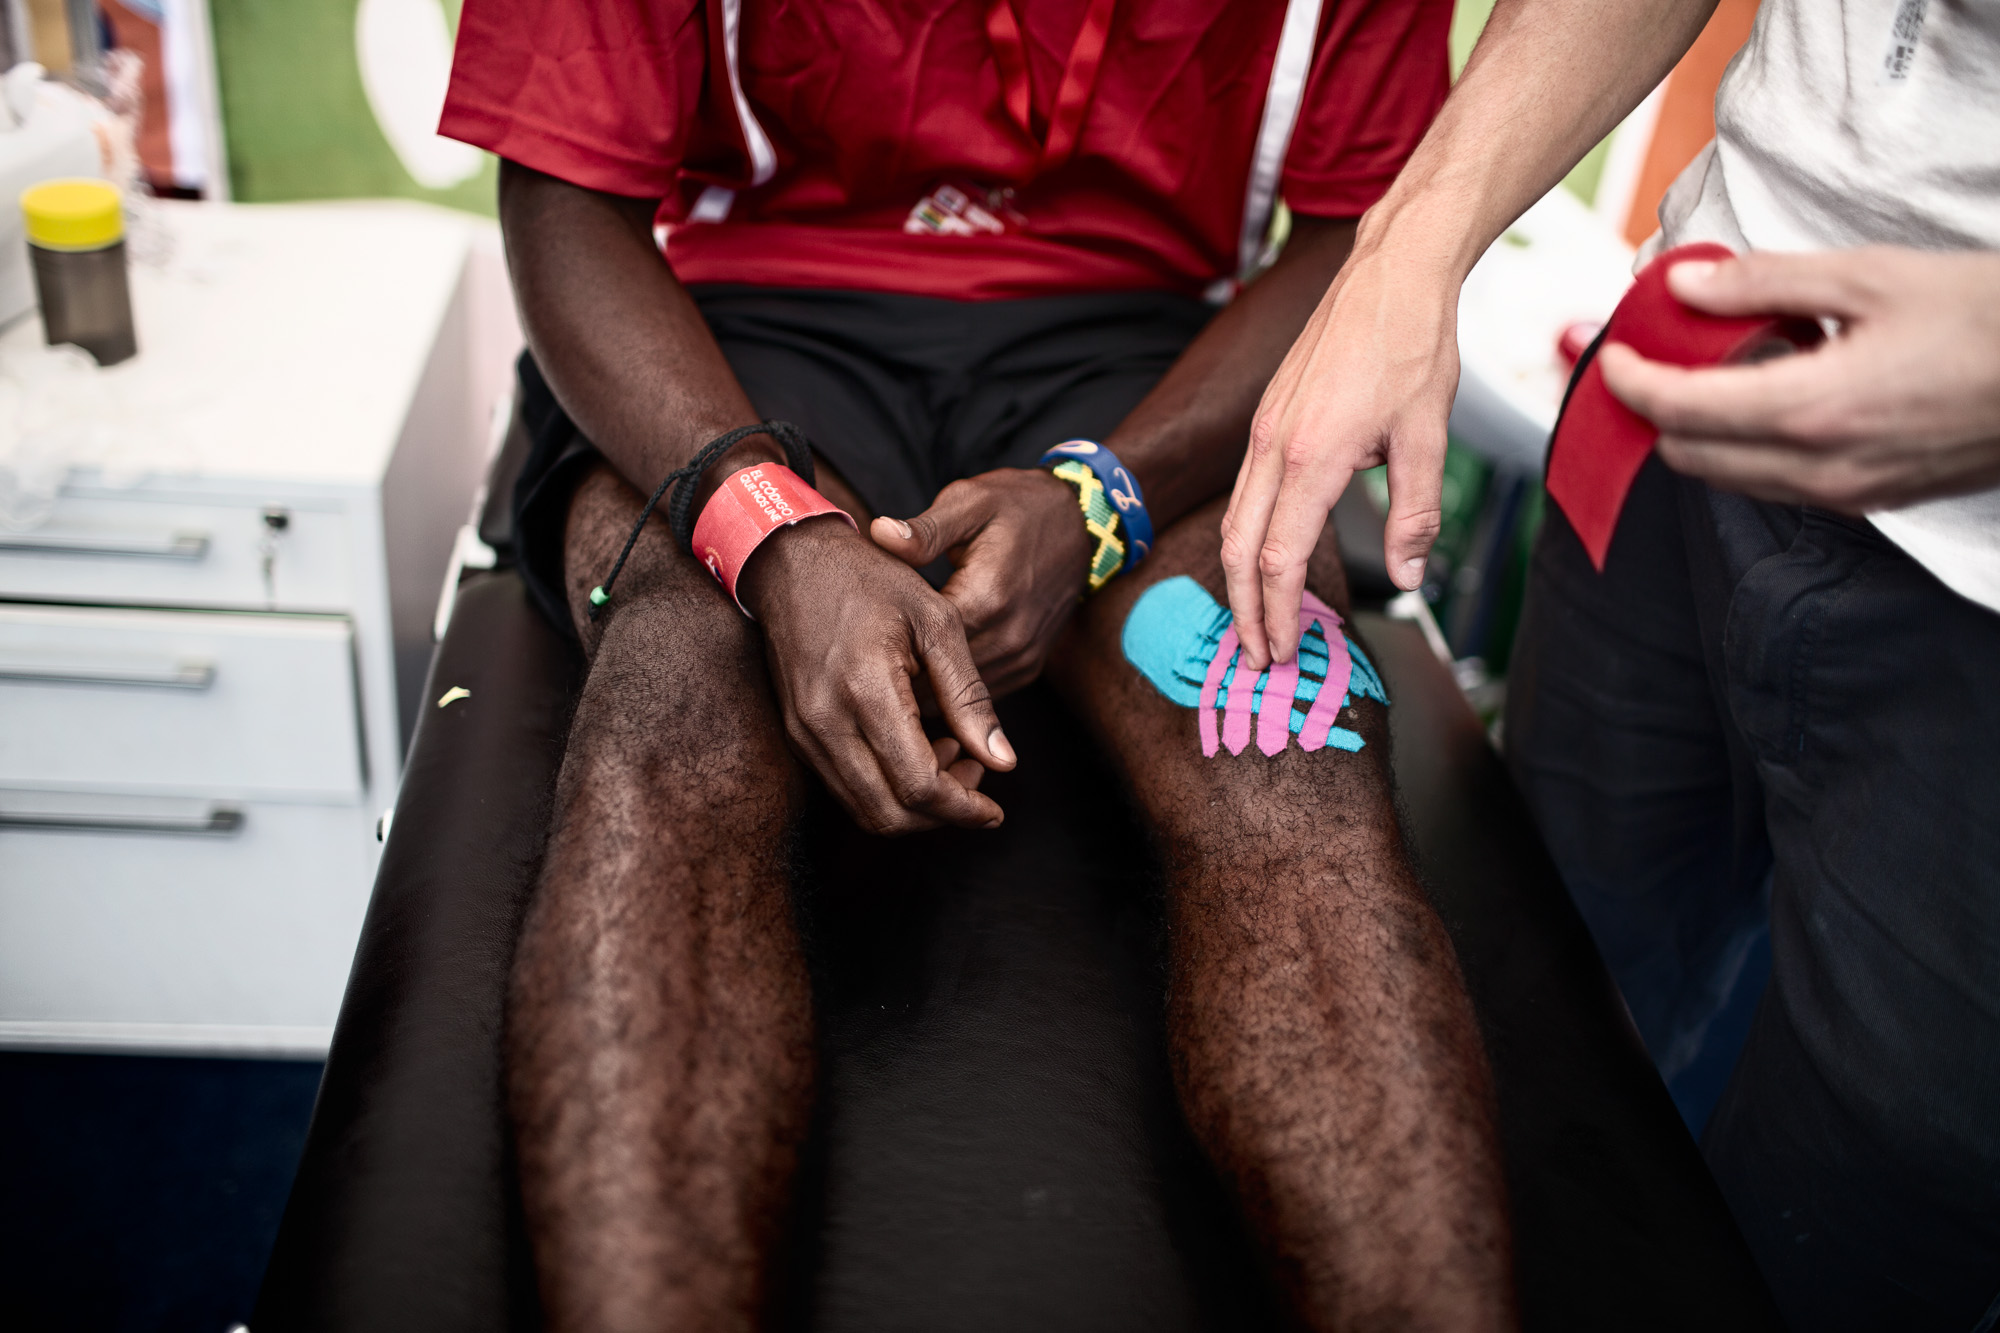 Mensah 18, sits in the medical area receiving care from a team physio before being taken to hospital with a torn ligament.  Upset not because of the extreme pain, but for the thought of letting his team down by not being able to play for the remainder of the competition. Most of the workforce providing the logistical, media, journalistic, and medial support are all volunteers. Many will have given up their time, sometimes using holiday leave, to travel across the world to work non-stop for this charitable organisation for the week, to ensure its undeniable success.